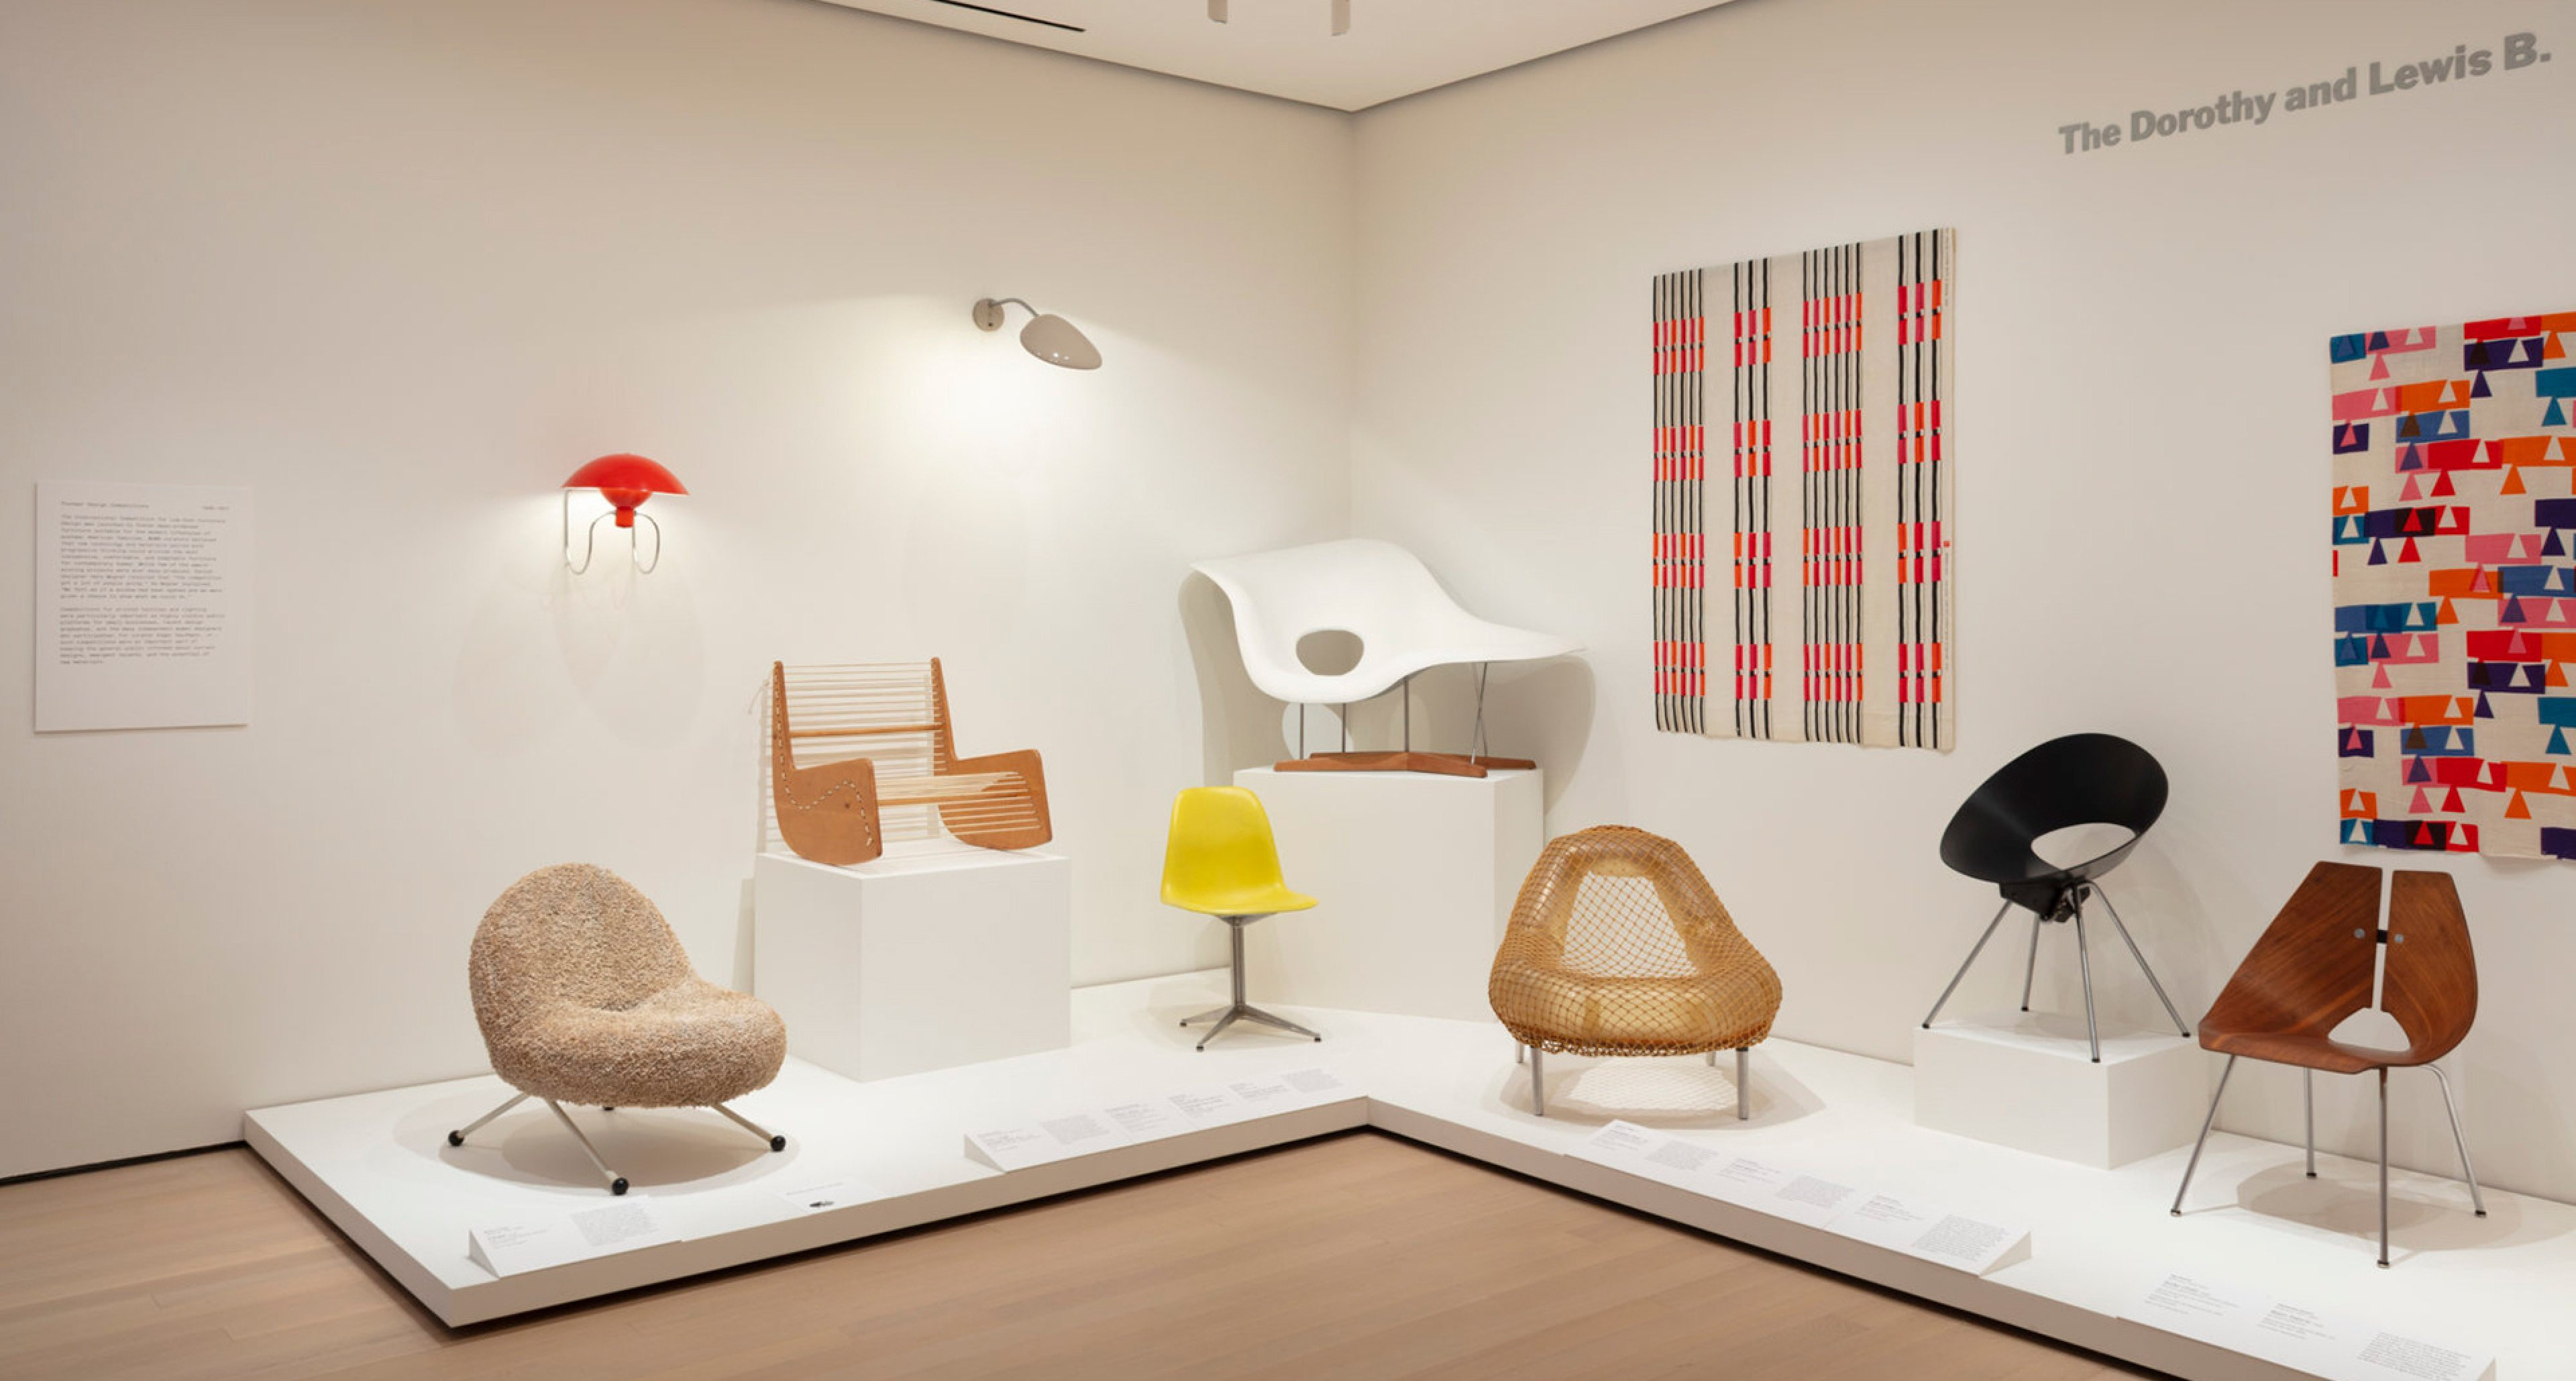 Installation view, The Value of Good Design at The Museum of Modern Art, New York (February 10–June 15, 2019). Digital image © 2019 The Museum of Modern Art, New York. Photo: John Wronn